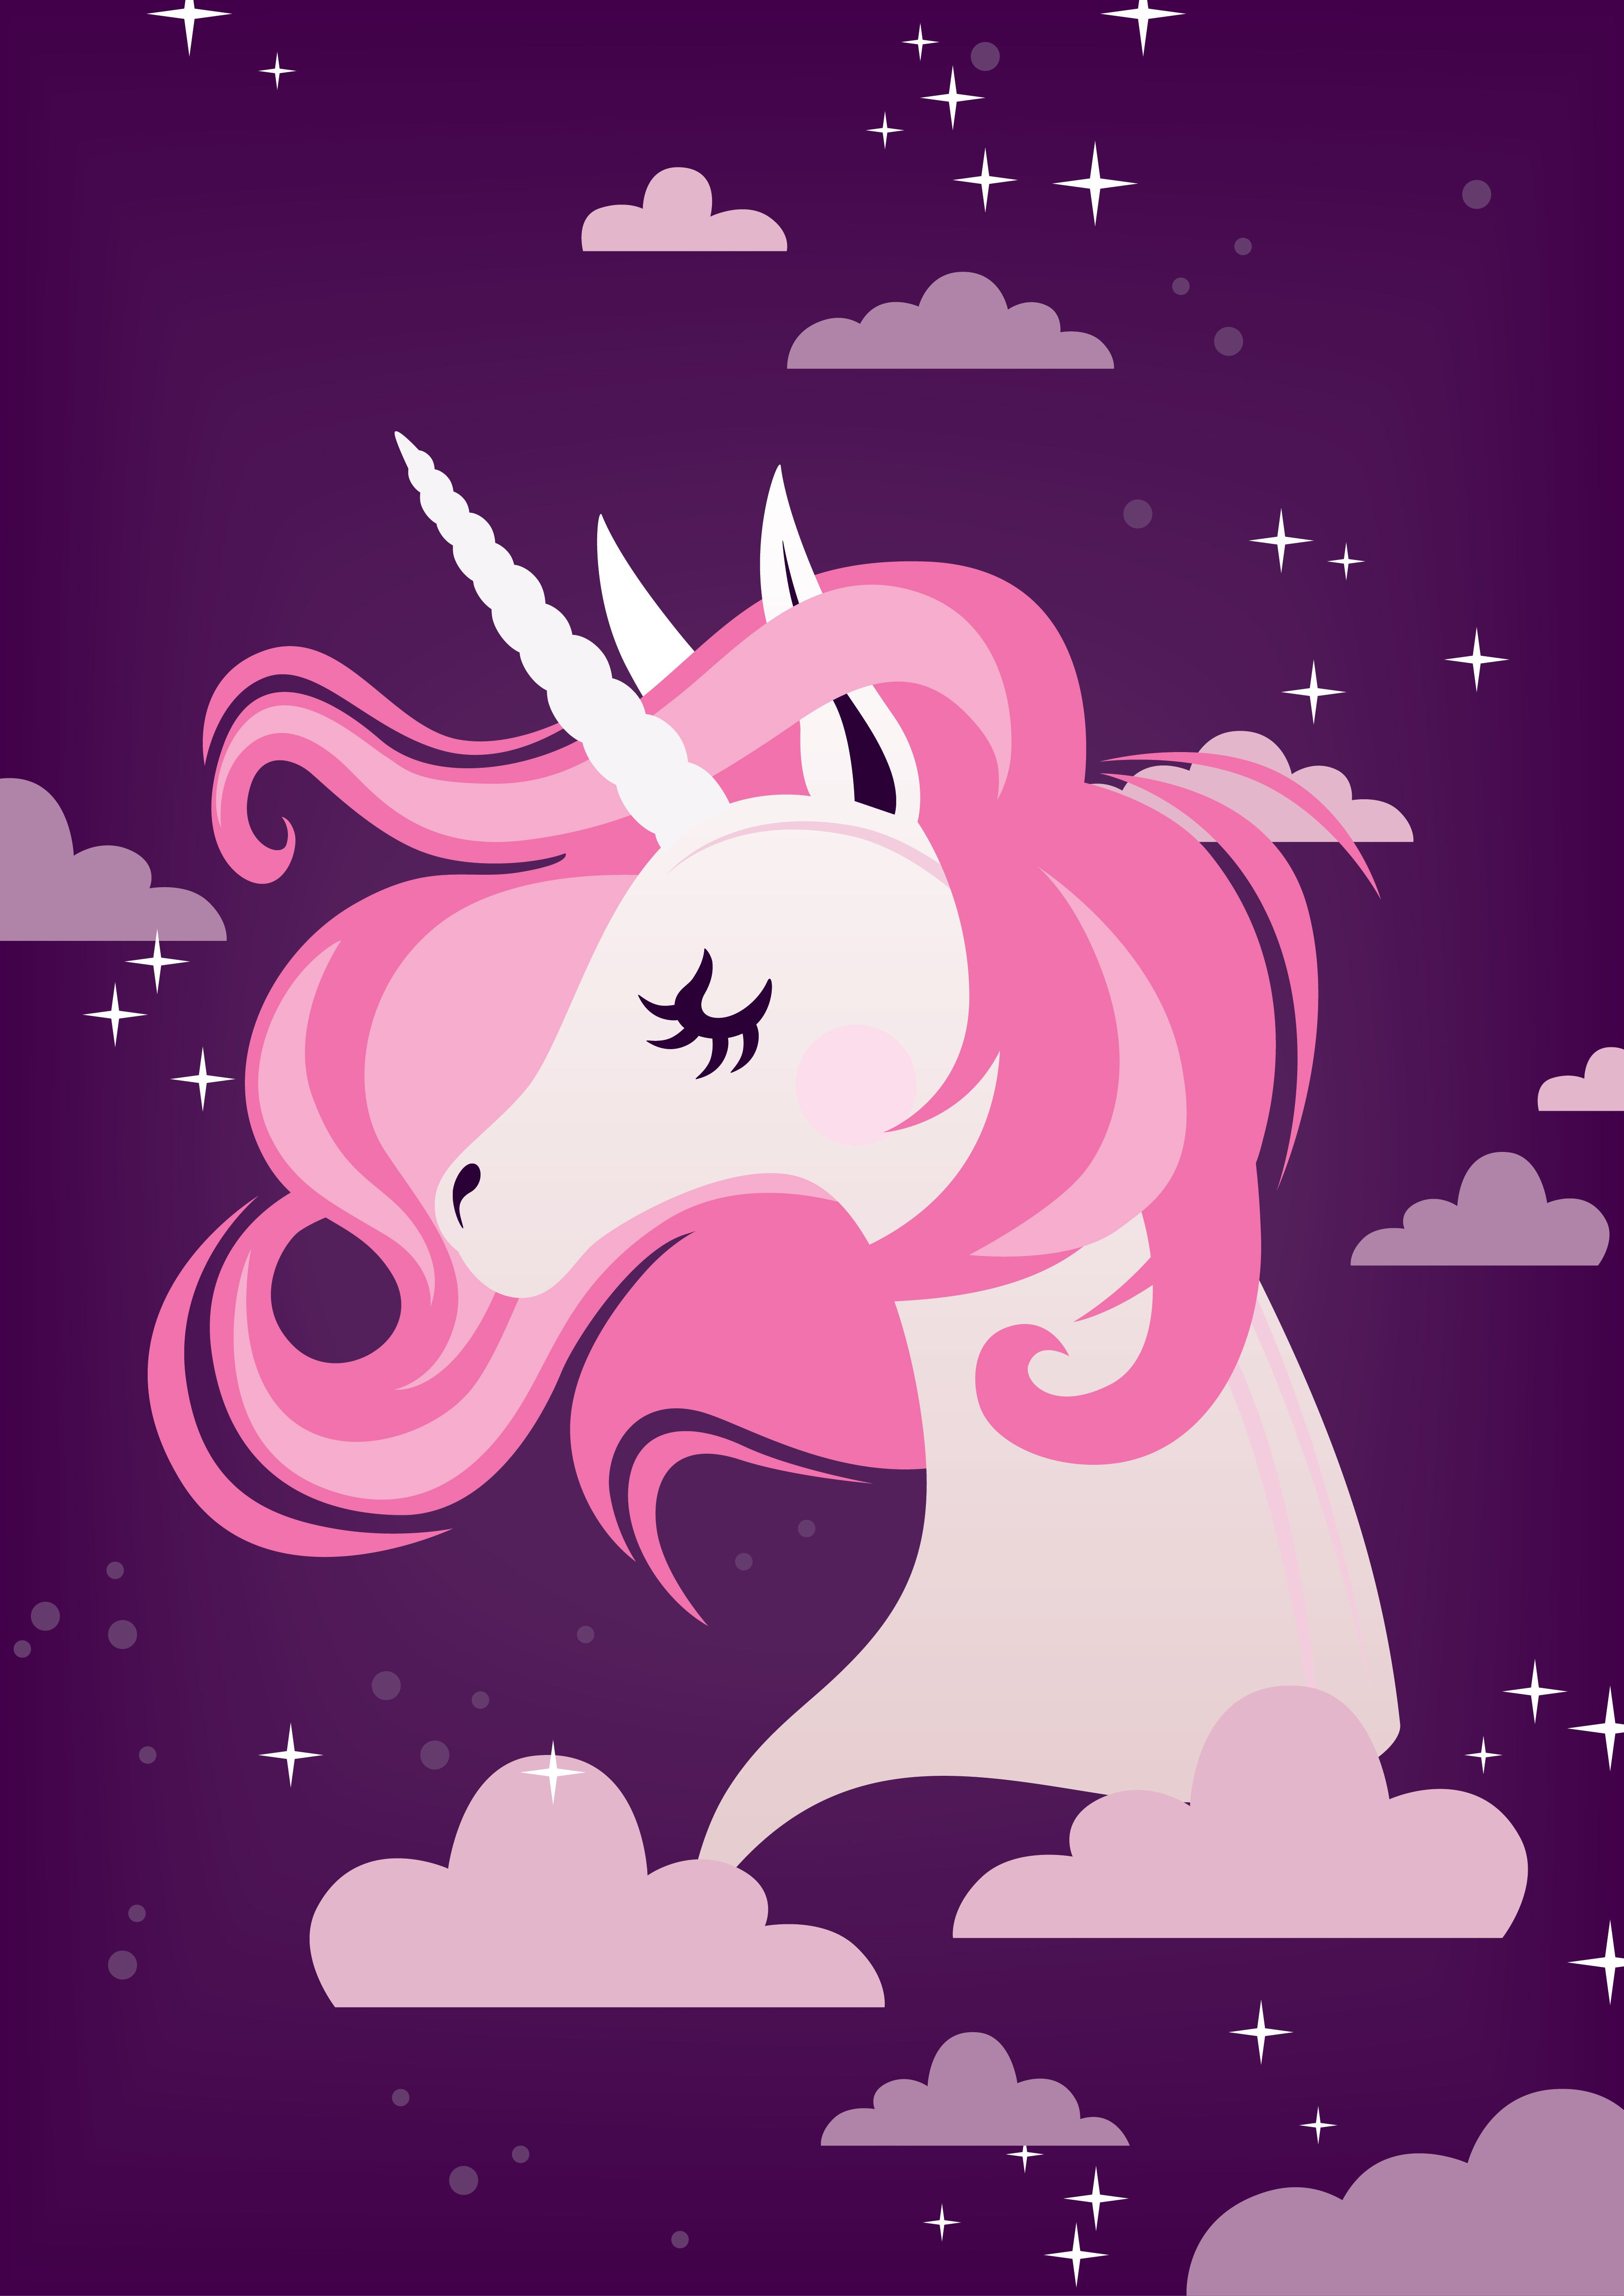 Pin By Thehappytreedesign On Etsy Spuzzo Unicorn Wallpaper Cute Pink Unicorn Wallpaper Unicorn Wallpaper Cute unicorn live wallpaper